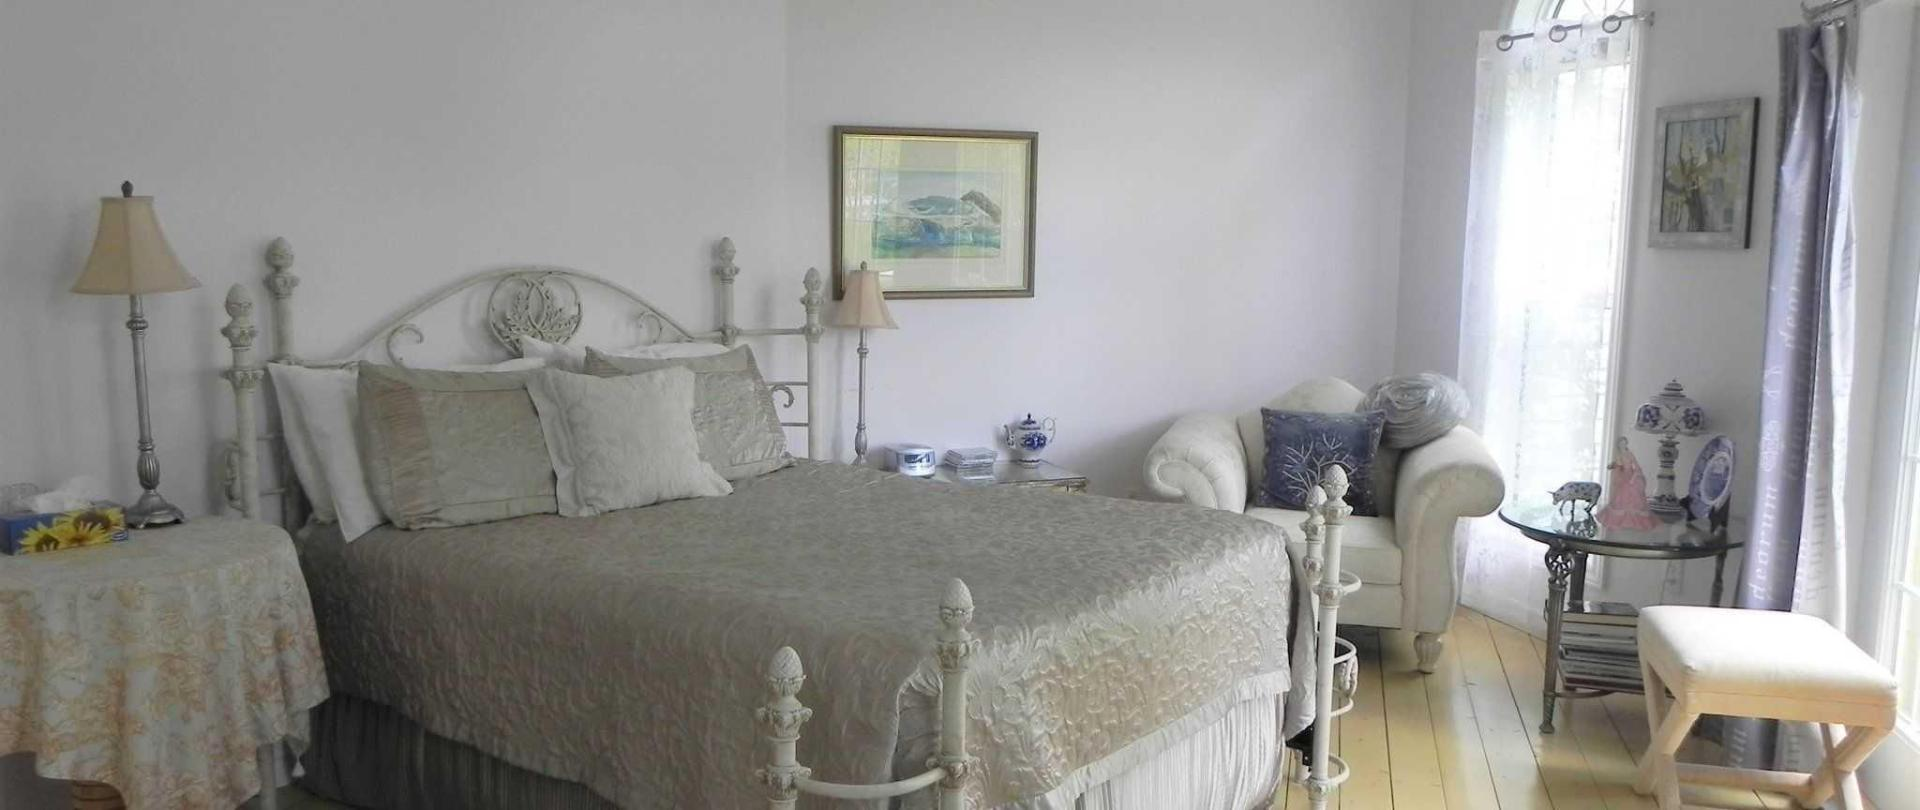 English Country Garden Bed and Breakfast Inn - Indian Brook ...